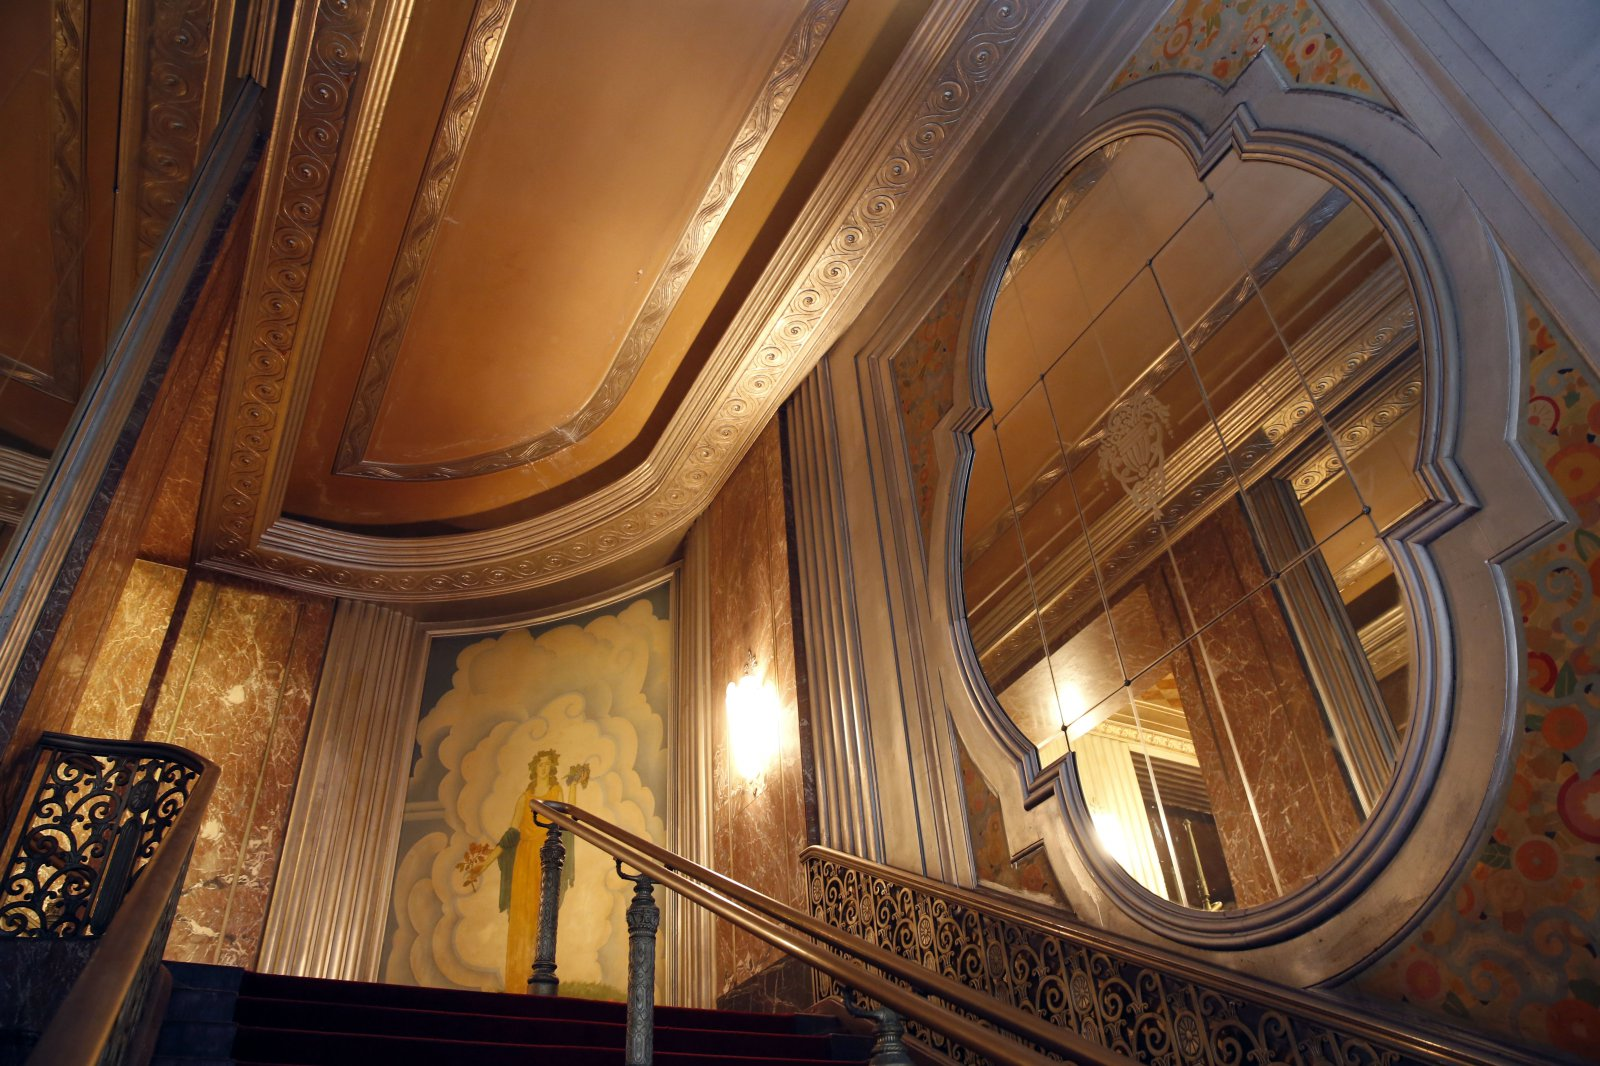 Stairway in the Grand Warner Theater